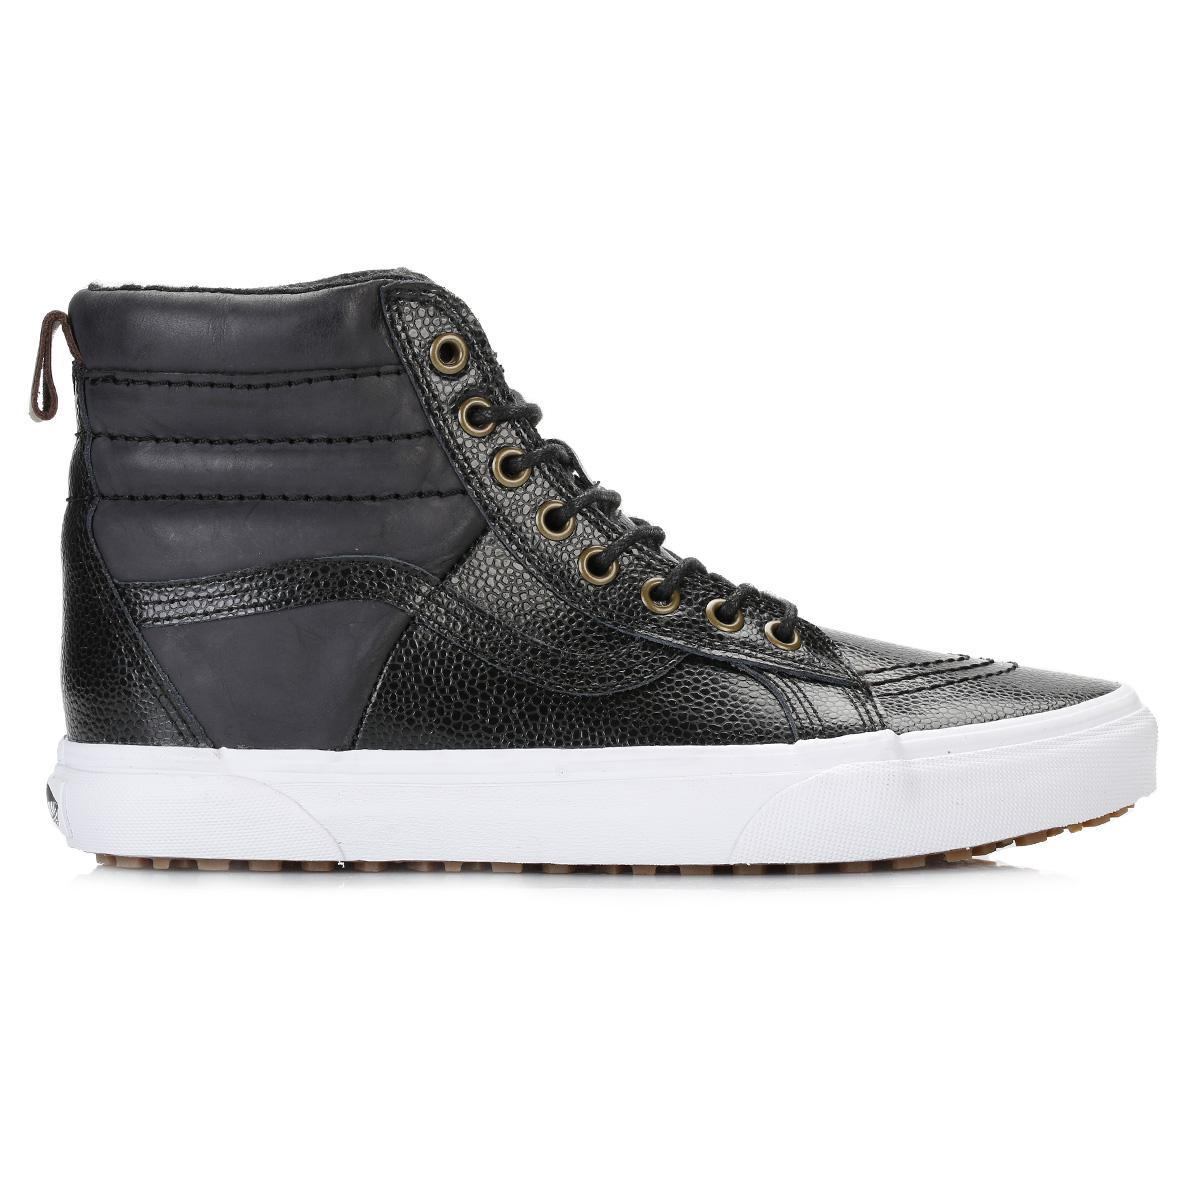 37d645be7e9 Lyst - Vans Womens Black Pebble Leather Sk8-hi 46 Mte Trainers in Black